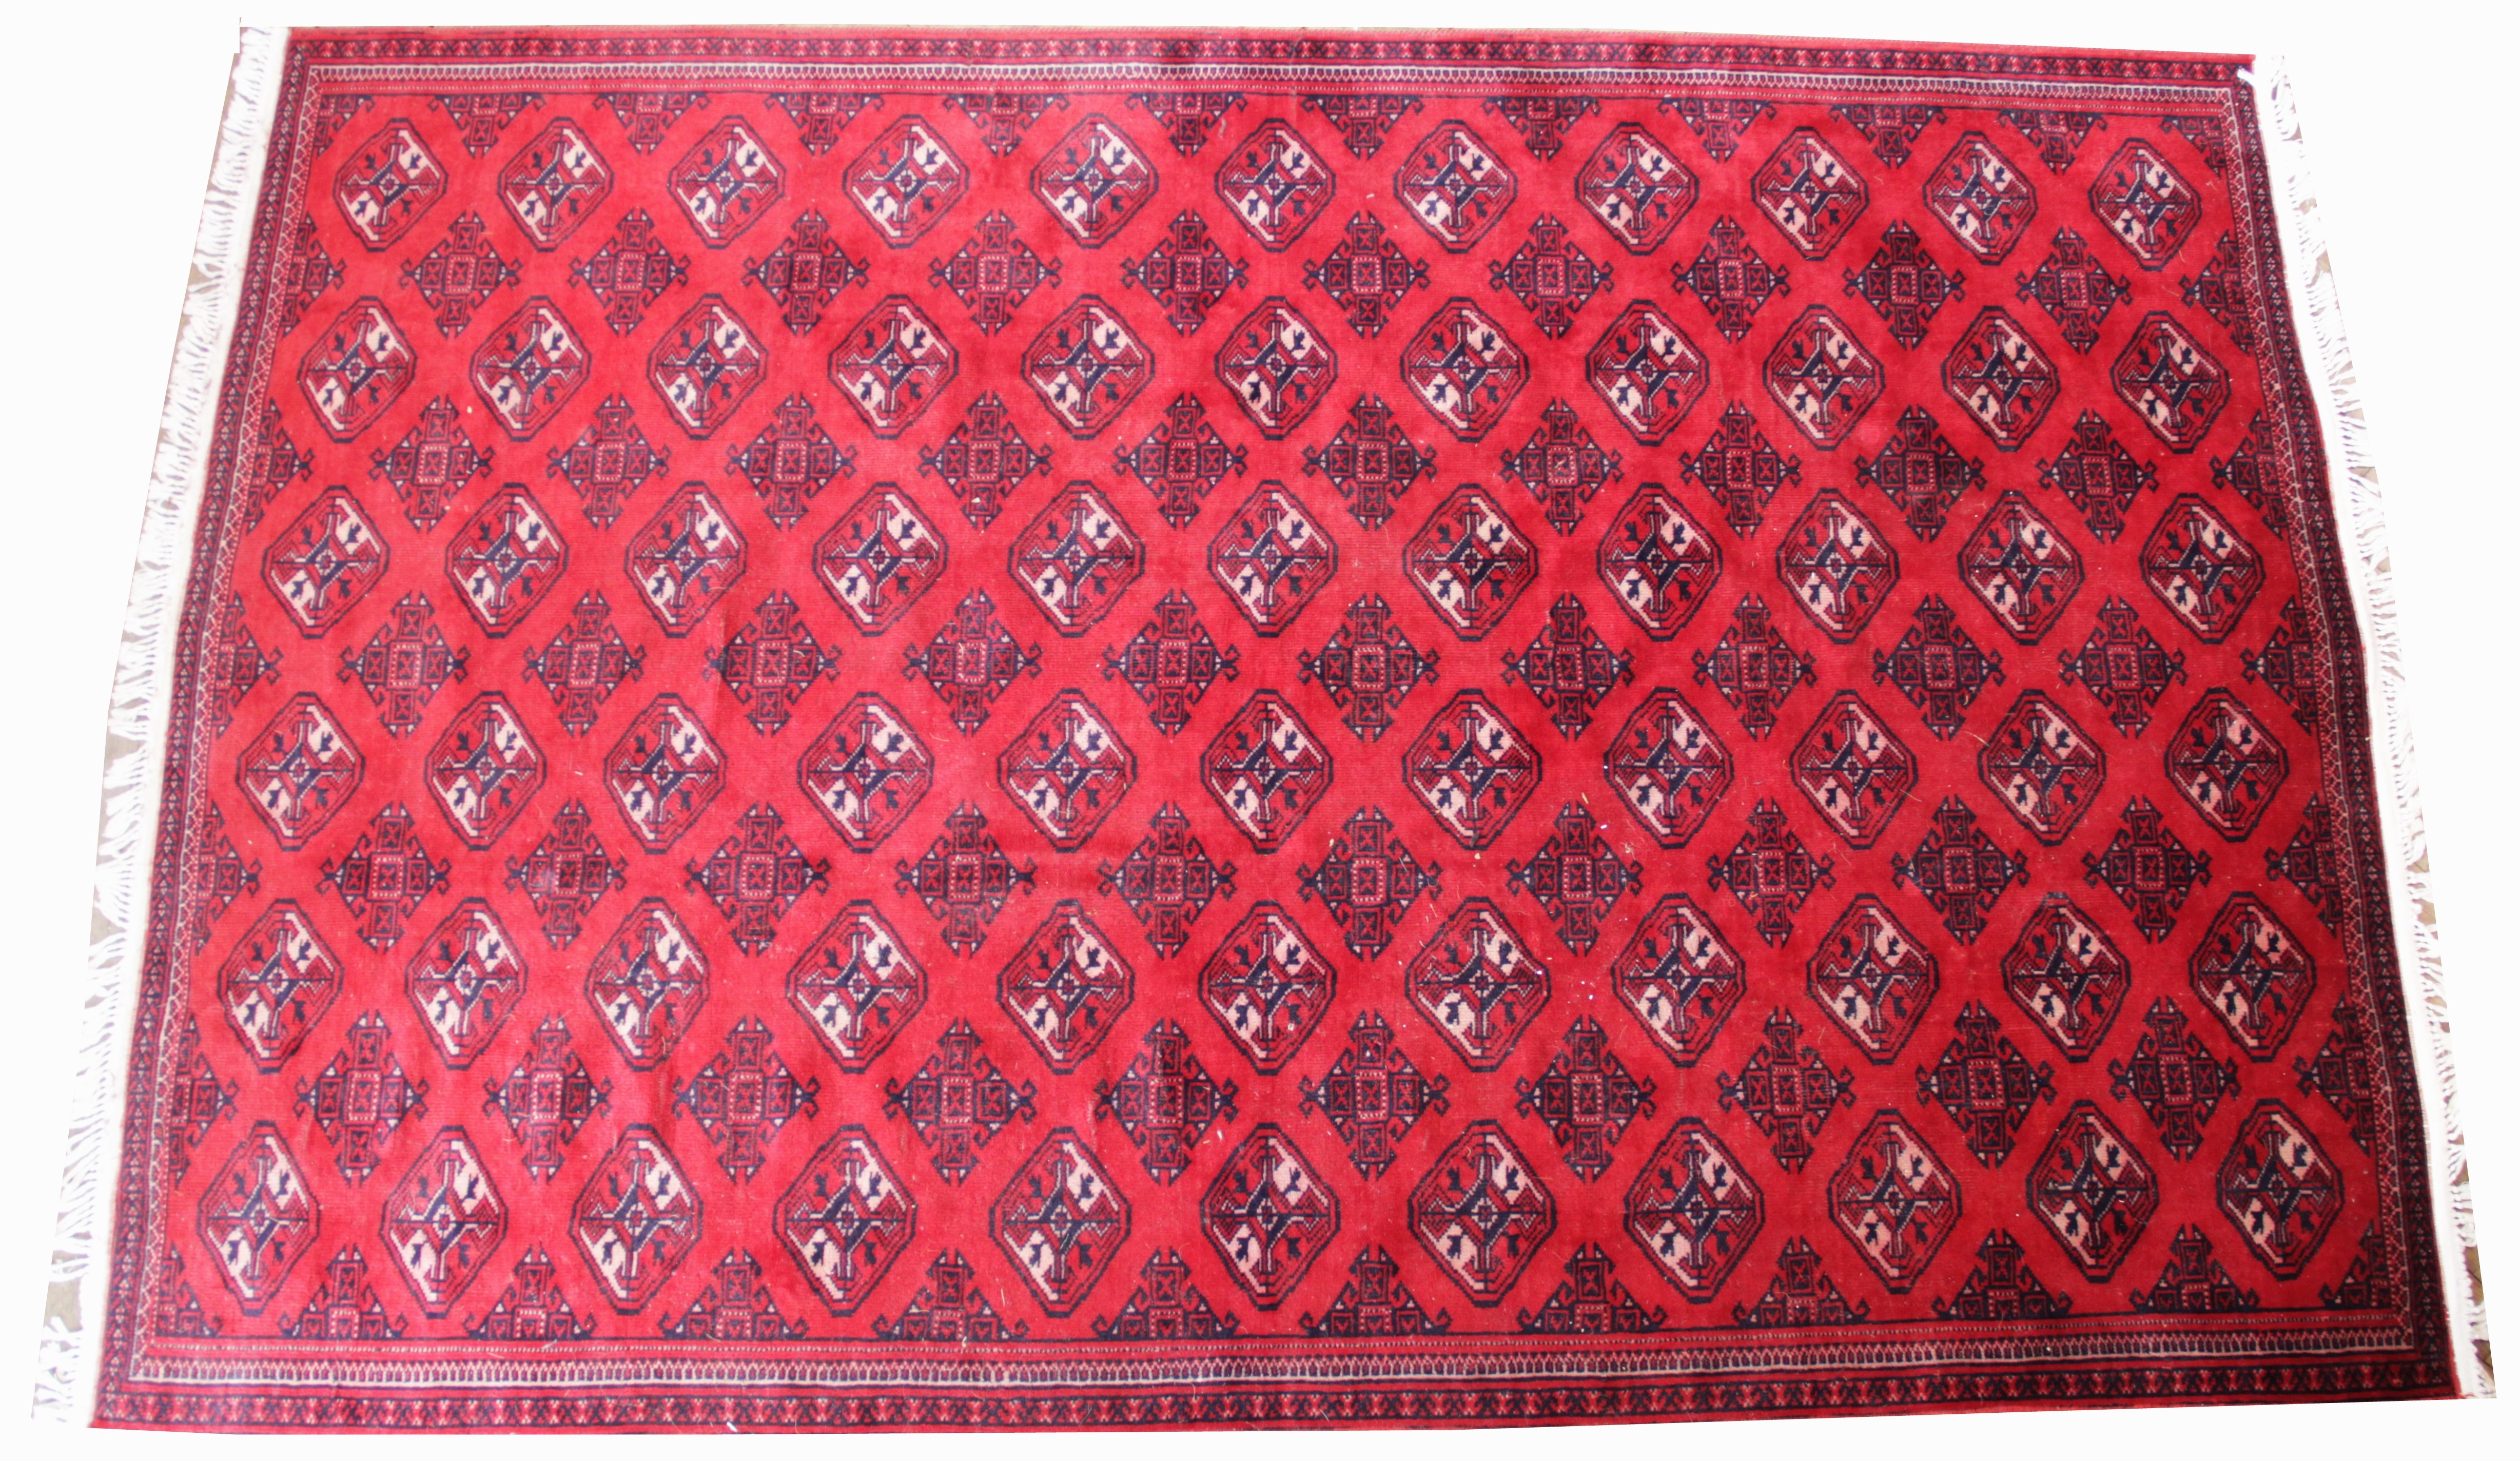 A rich red ground Turkmen carpet, with all over Bokhara design, 270cm x 180cm